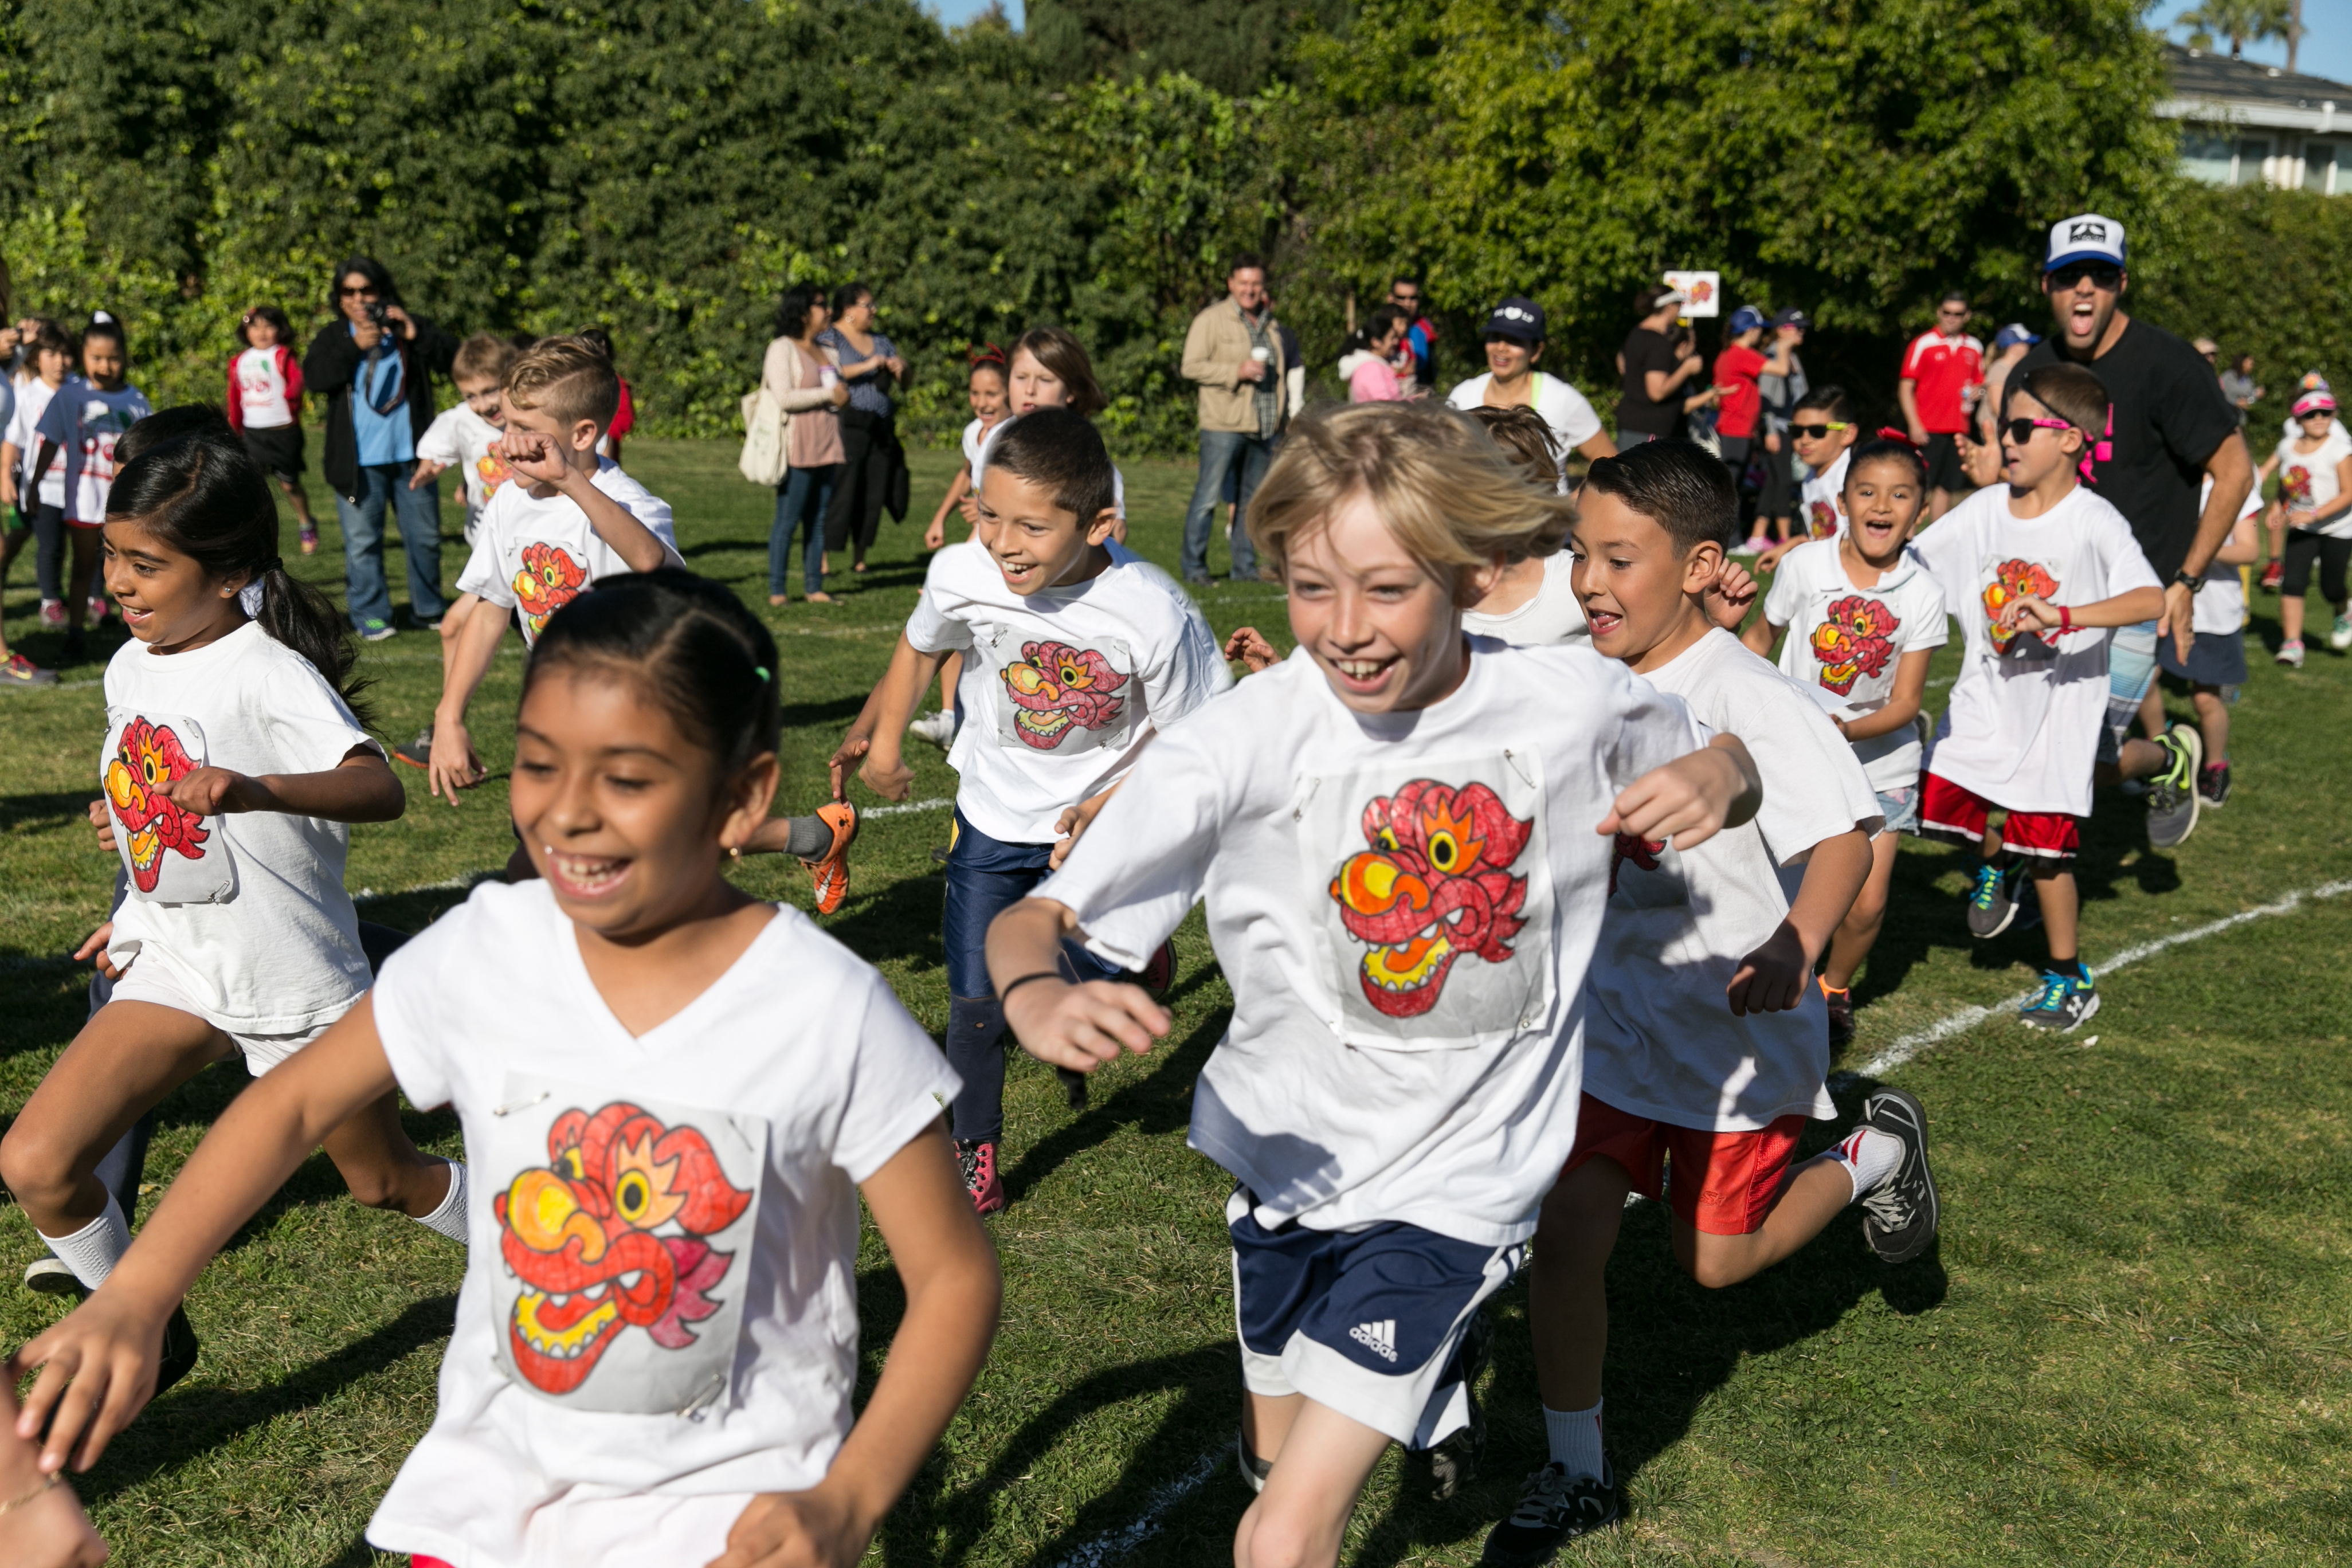 Students participate in last year's Jog-A-Thon.Photo: Courtesy of Rod Foster